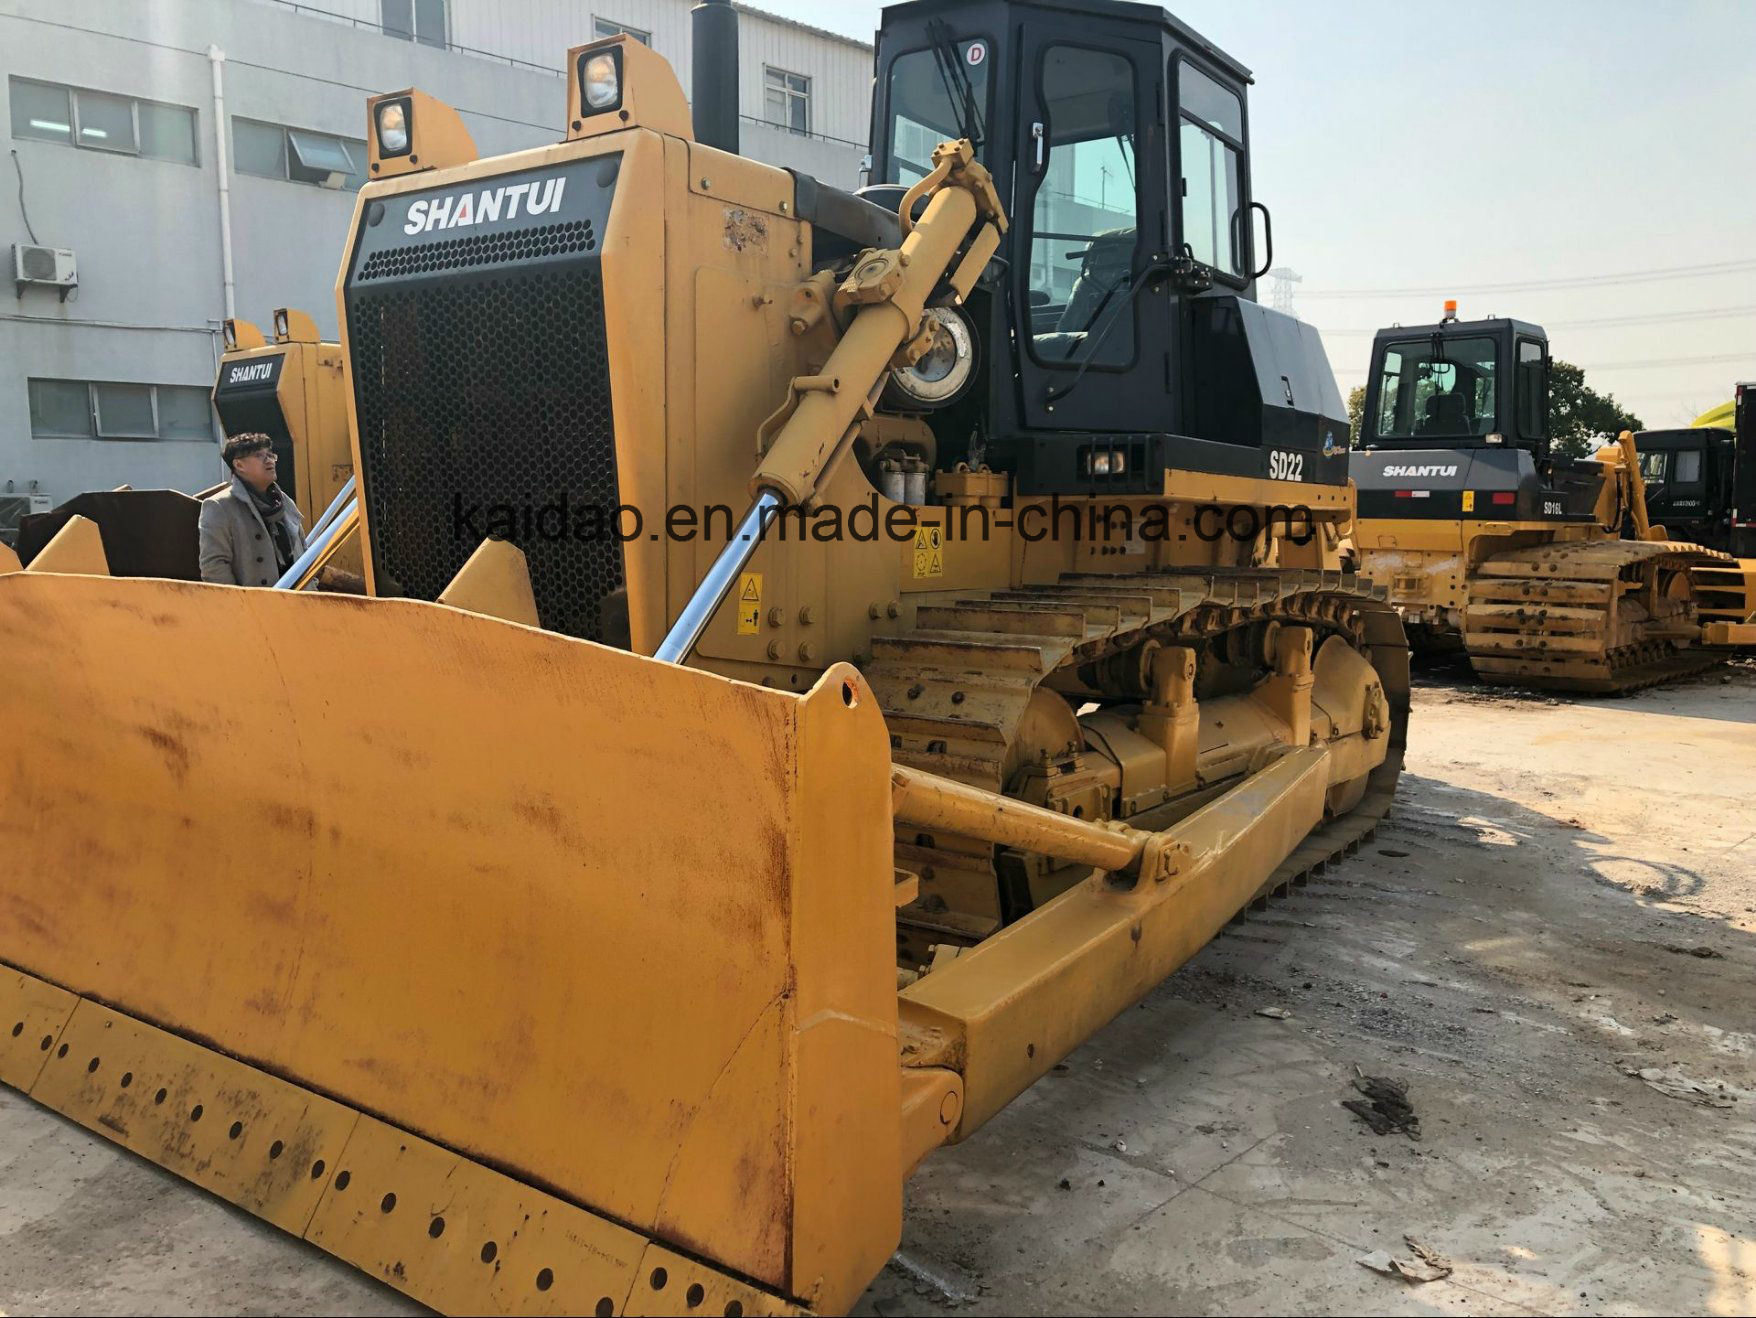 China New Arrival Shantui SD16 Bulldozer Excellent Condition Shantui  Bulldozer (SD16) - China Shantui SD16 Bulldozer, Used Bulldozer SD16